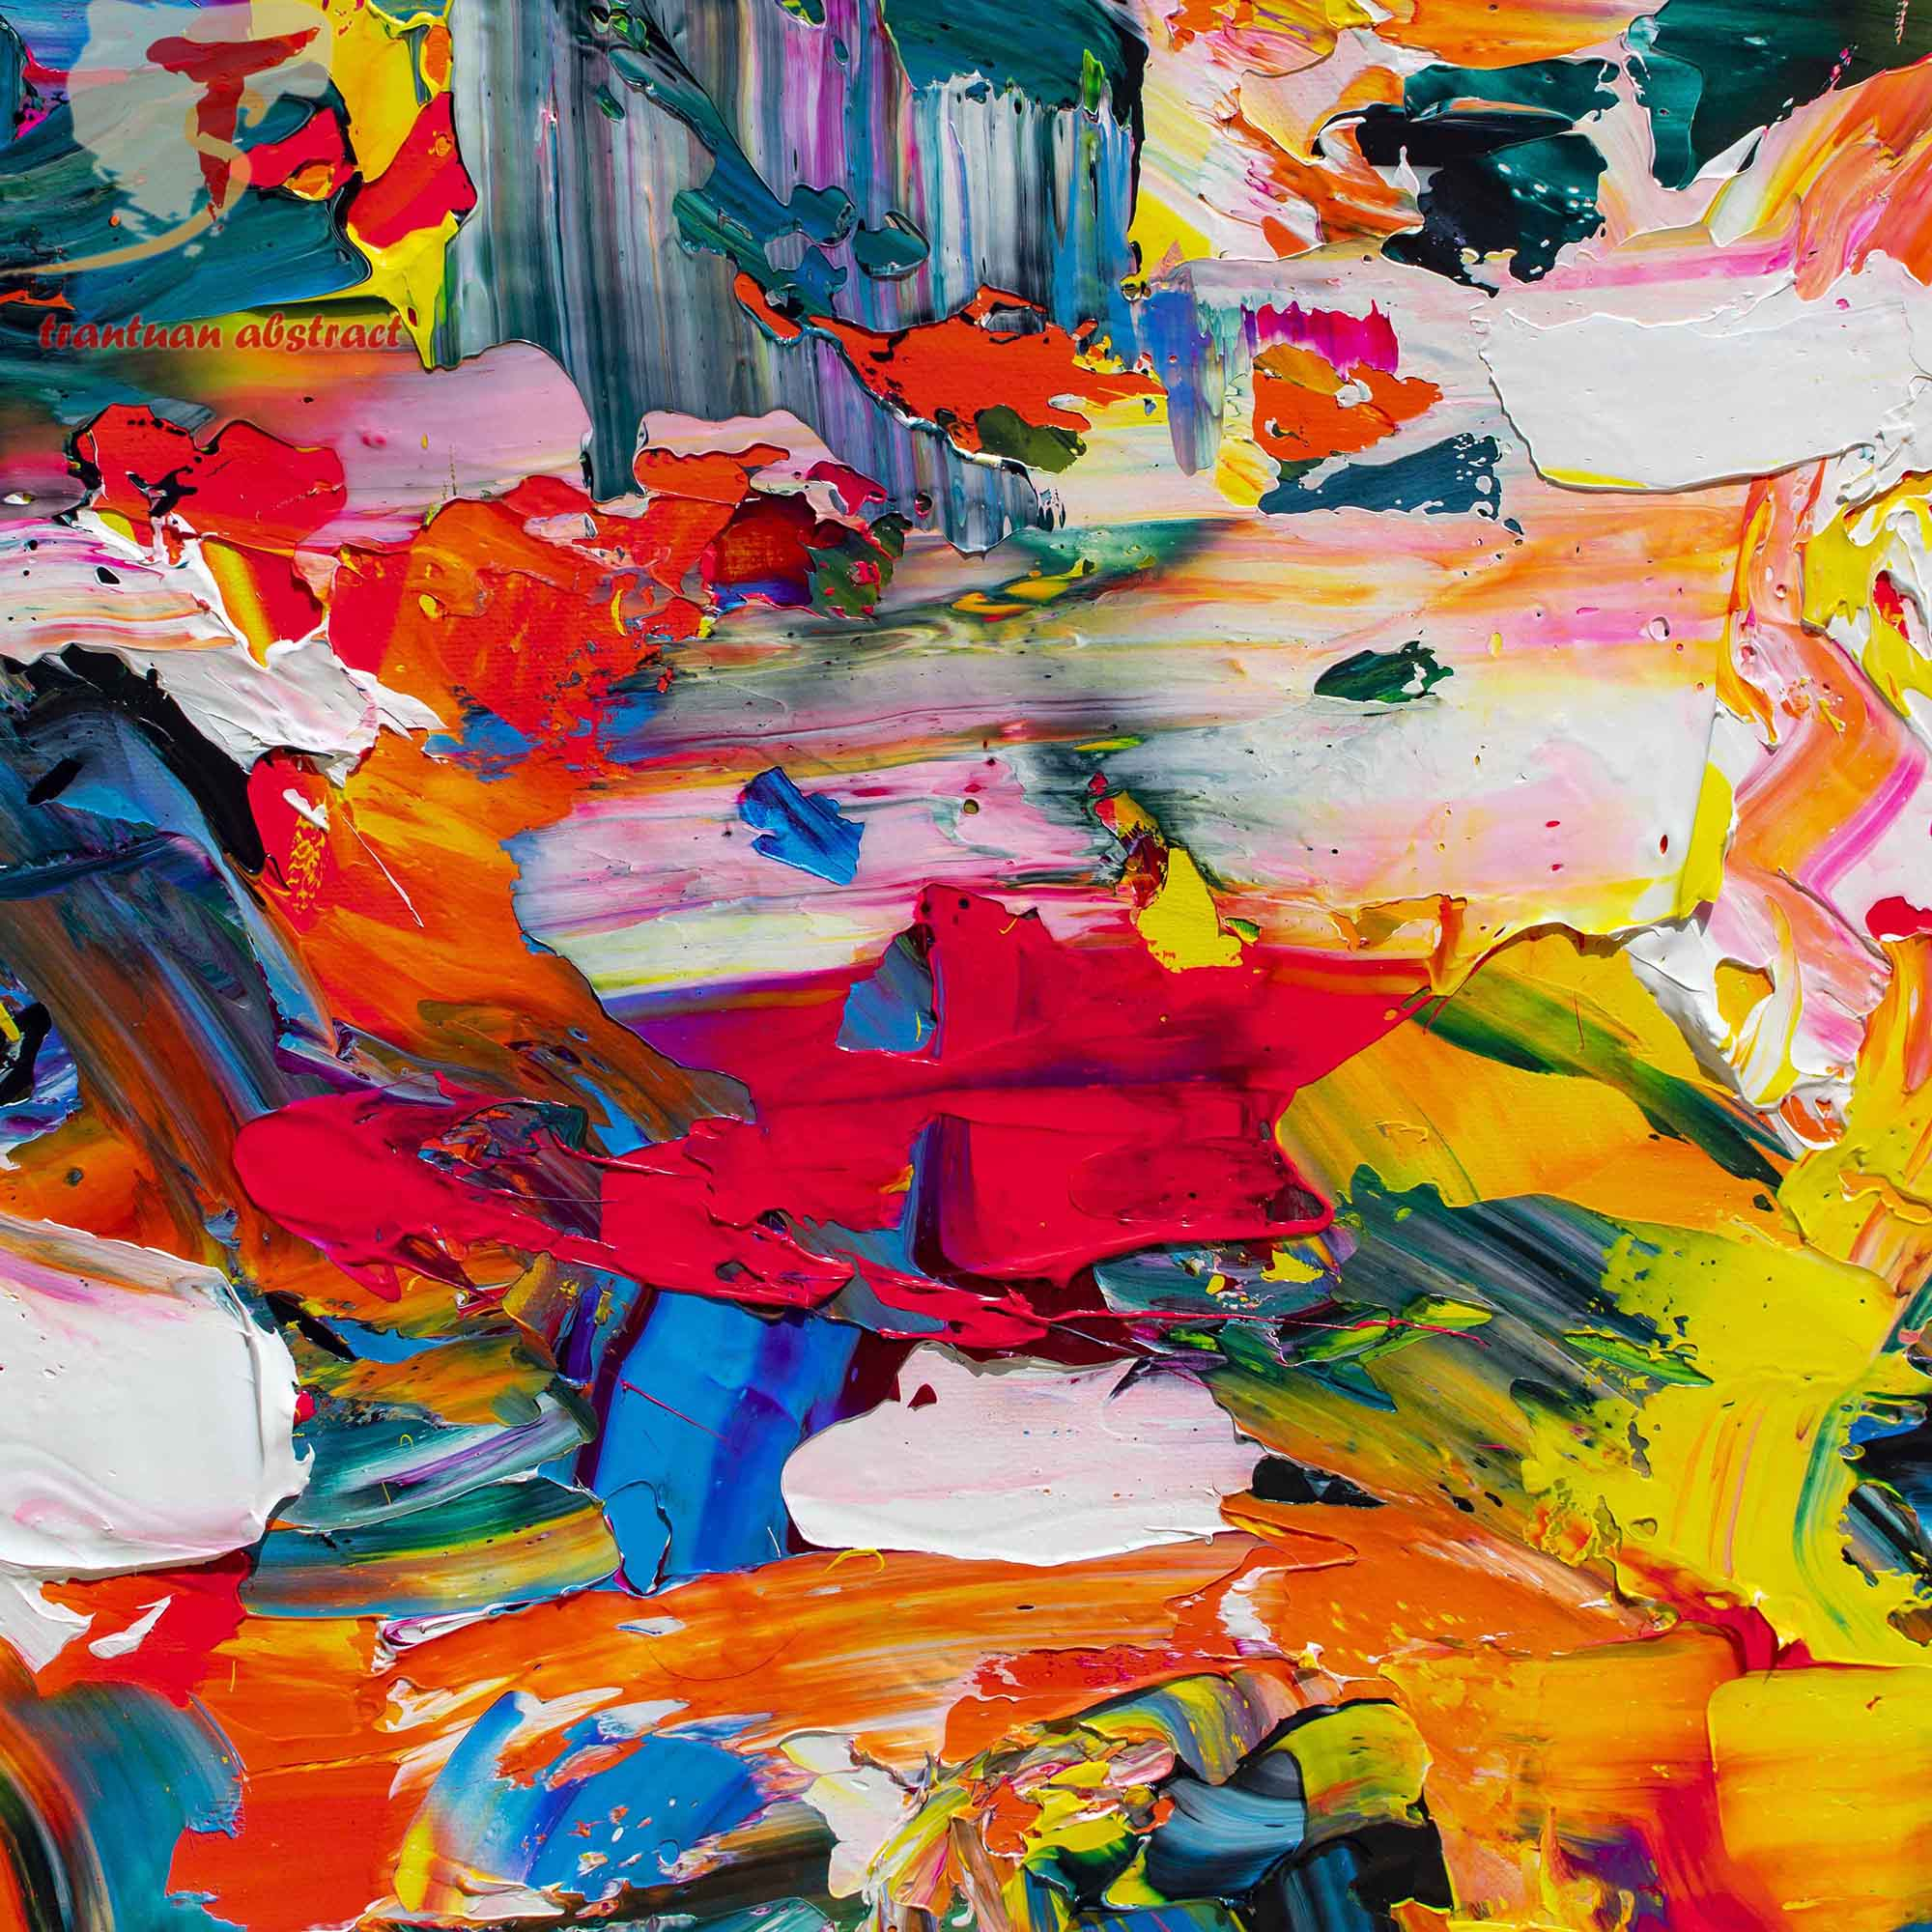 Tran Tuan Abstract Dance of Children 2021 135 x 80 x 5 cm Acrylic on Canvas Painting Detail s (2)